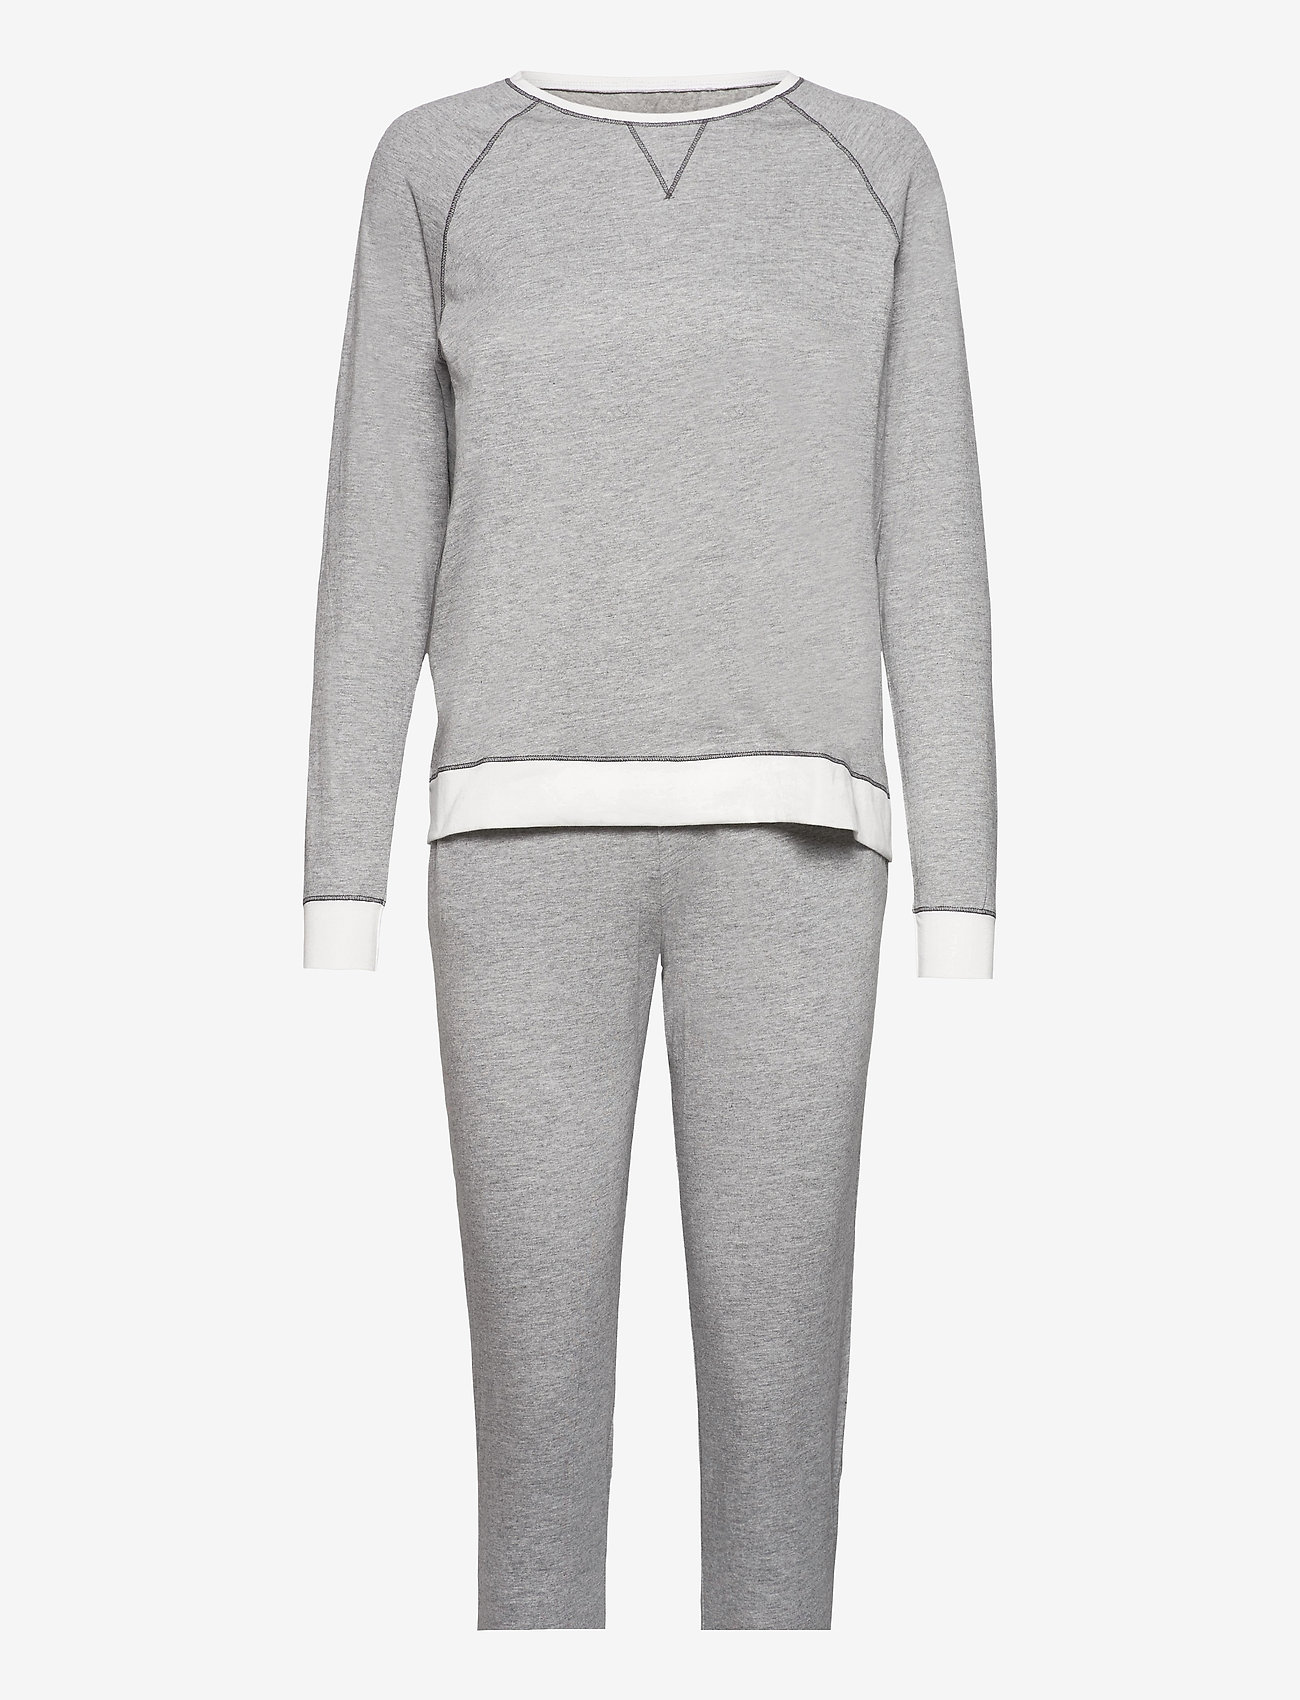 Esprit Bodywear Women - Pyjamas - pyjama''s - medium grey - 0